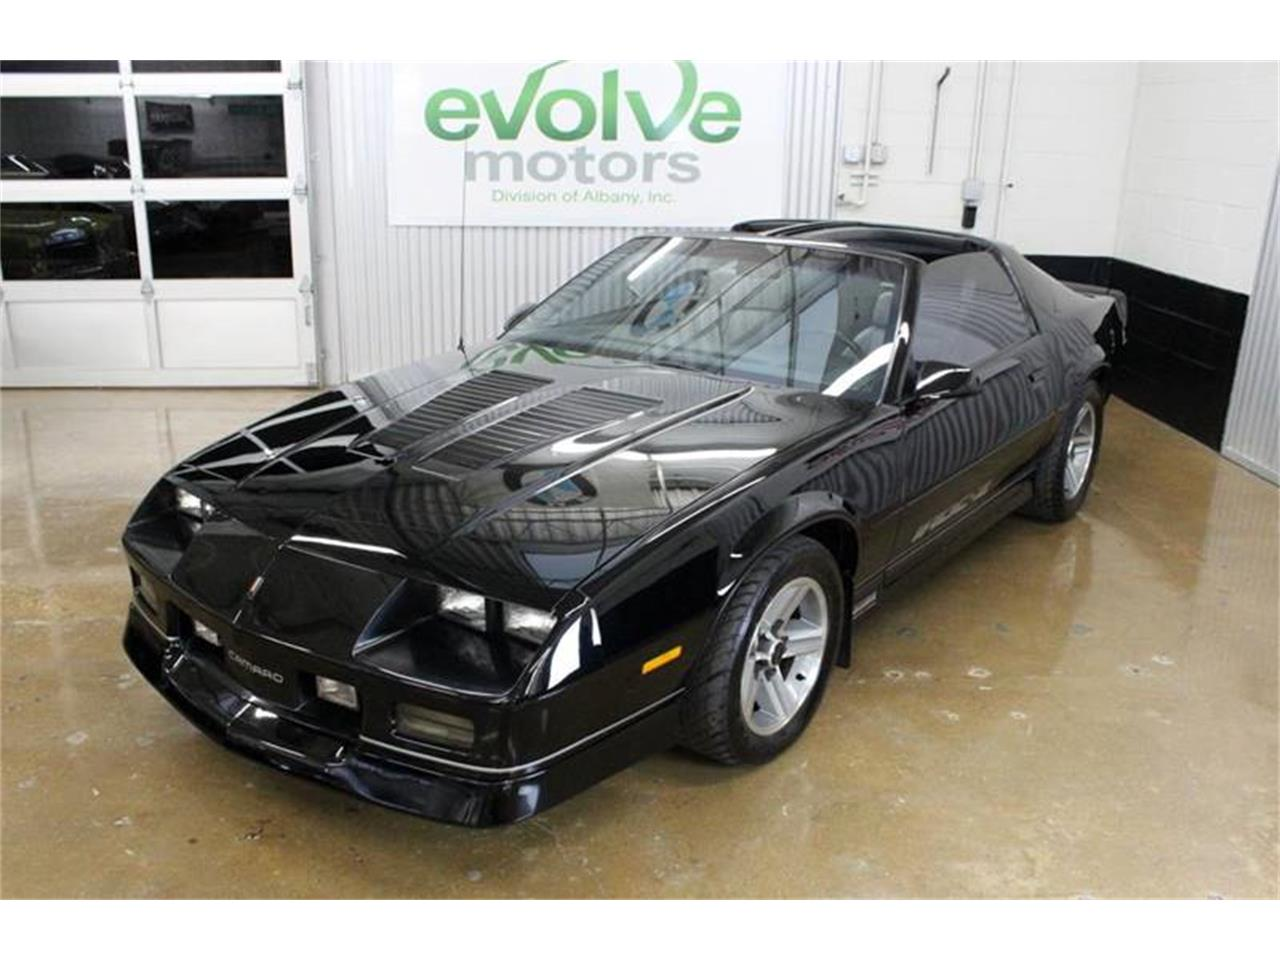 Large Picture of '85 Chevrolet Camaro located in Illinois - $18,900.00 Offered by Evolve Motors - MB2C